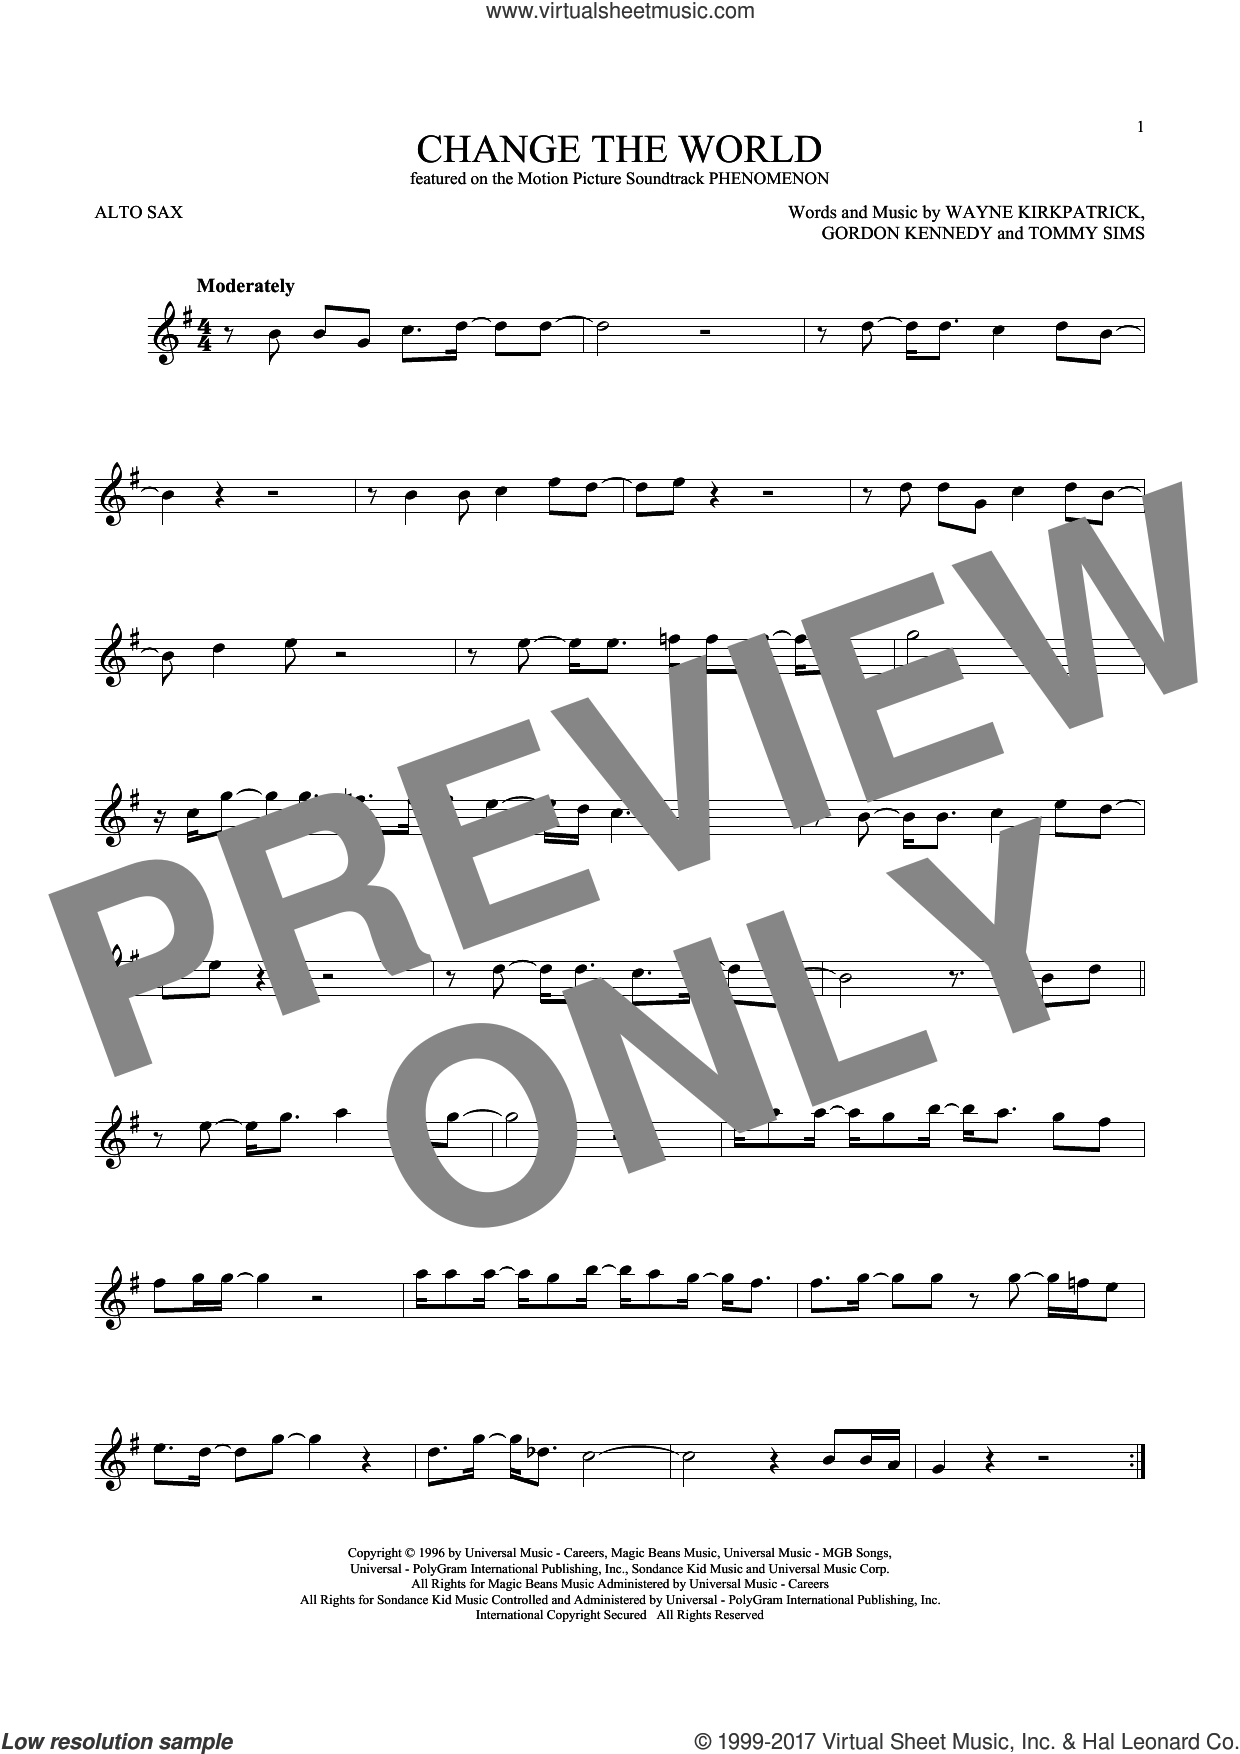 Change The World sheet music for alto saxophone solo ( Sax) by Eric Clapton, Wynonna, Gordon Kennedy, Tommy Sims and Wayne Kirkpatrick, intermediate alto saxophone ( Sax). Score Image Preview.